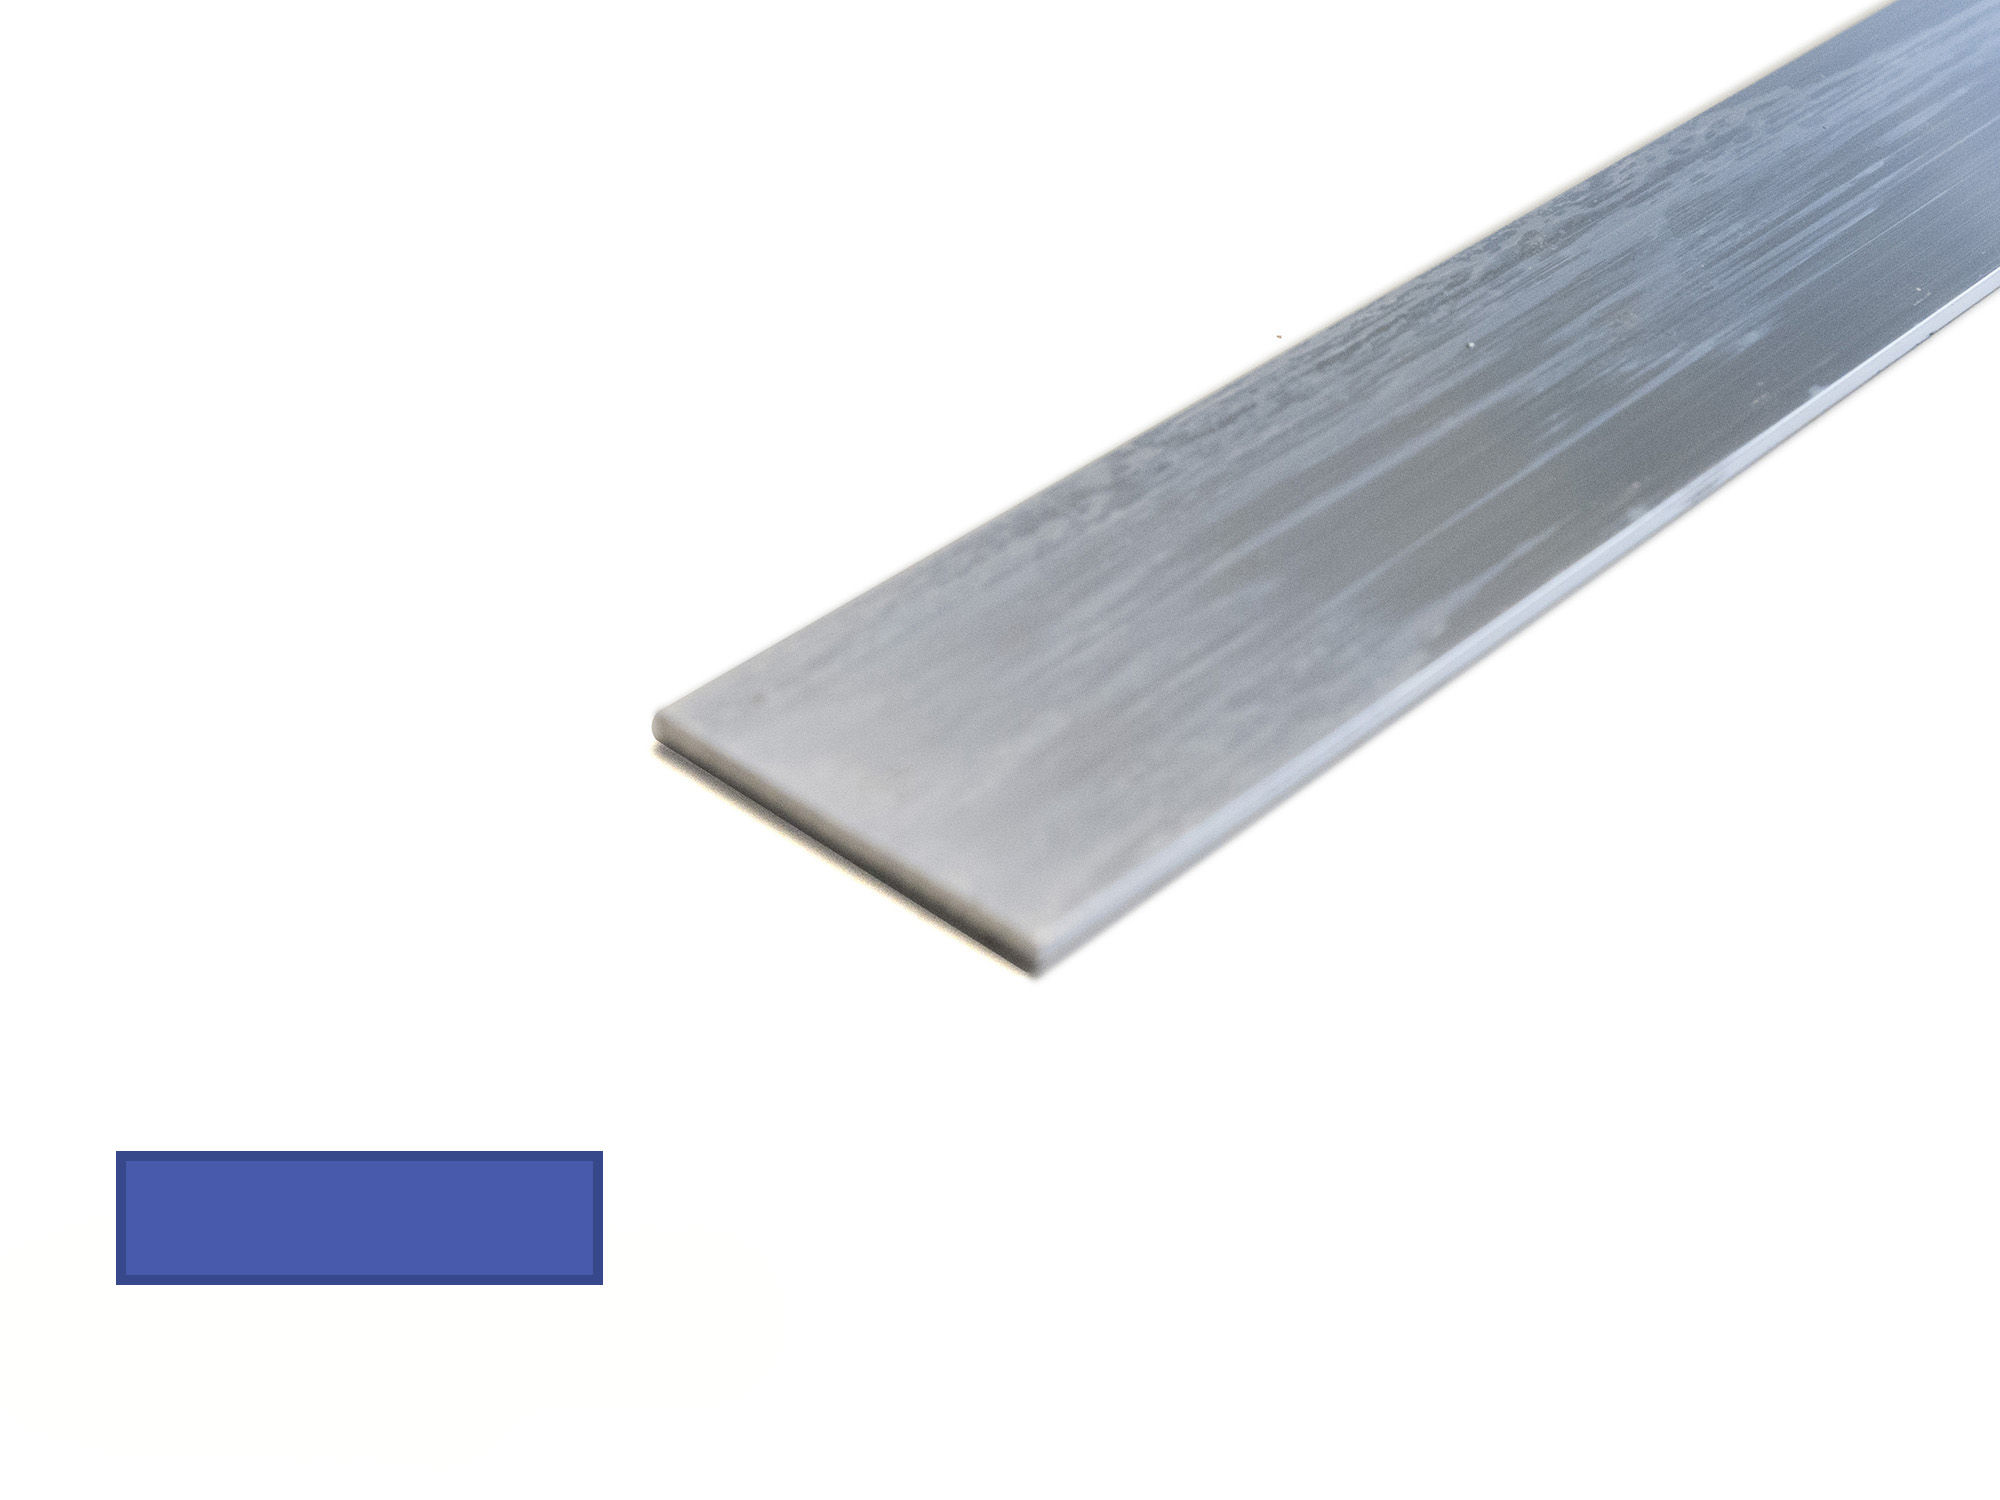 aluminium strip 15 x 6mm